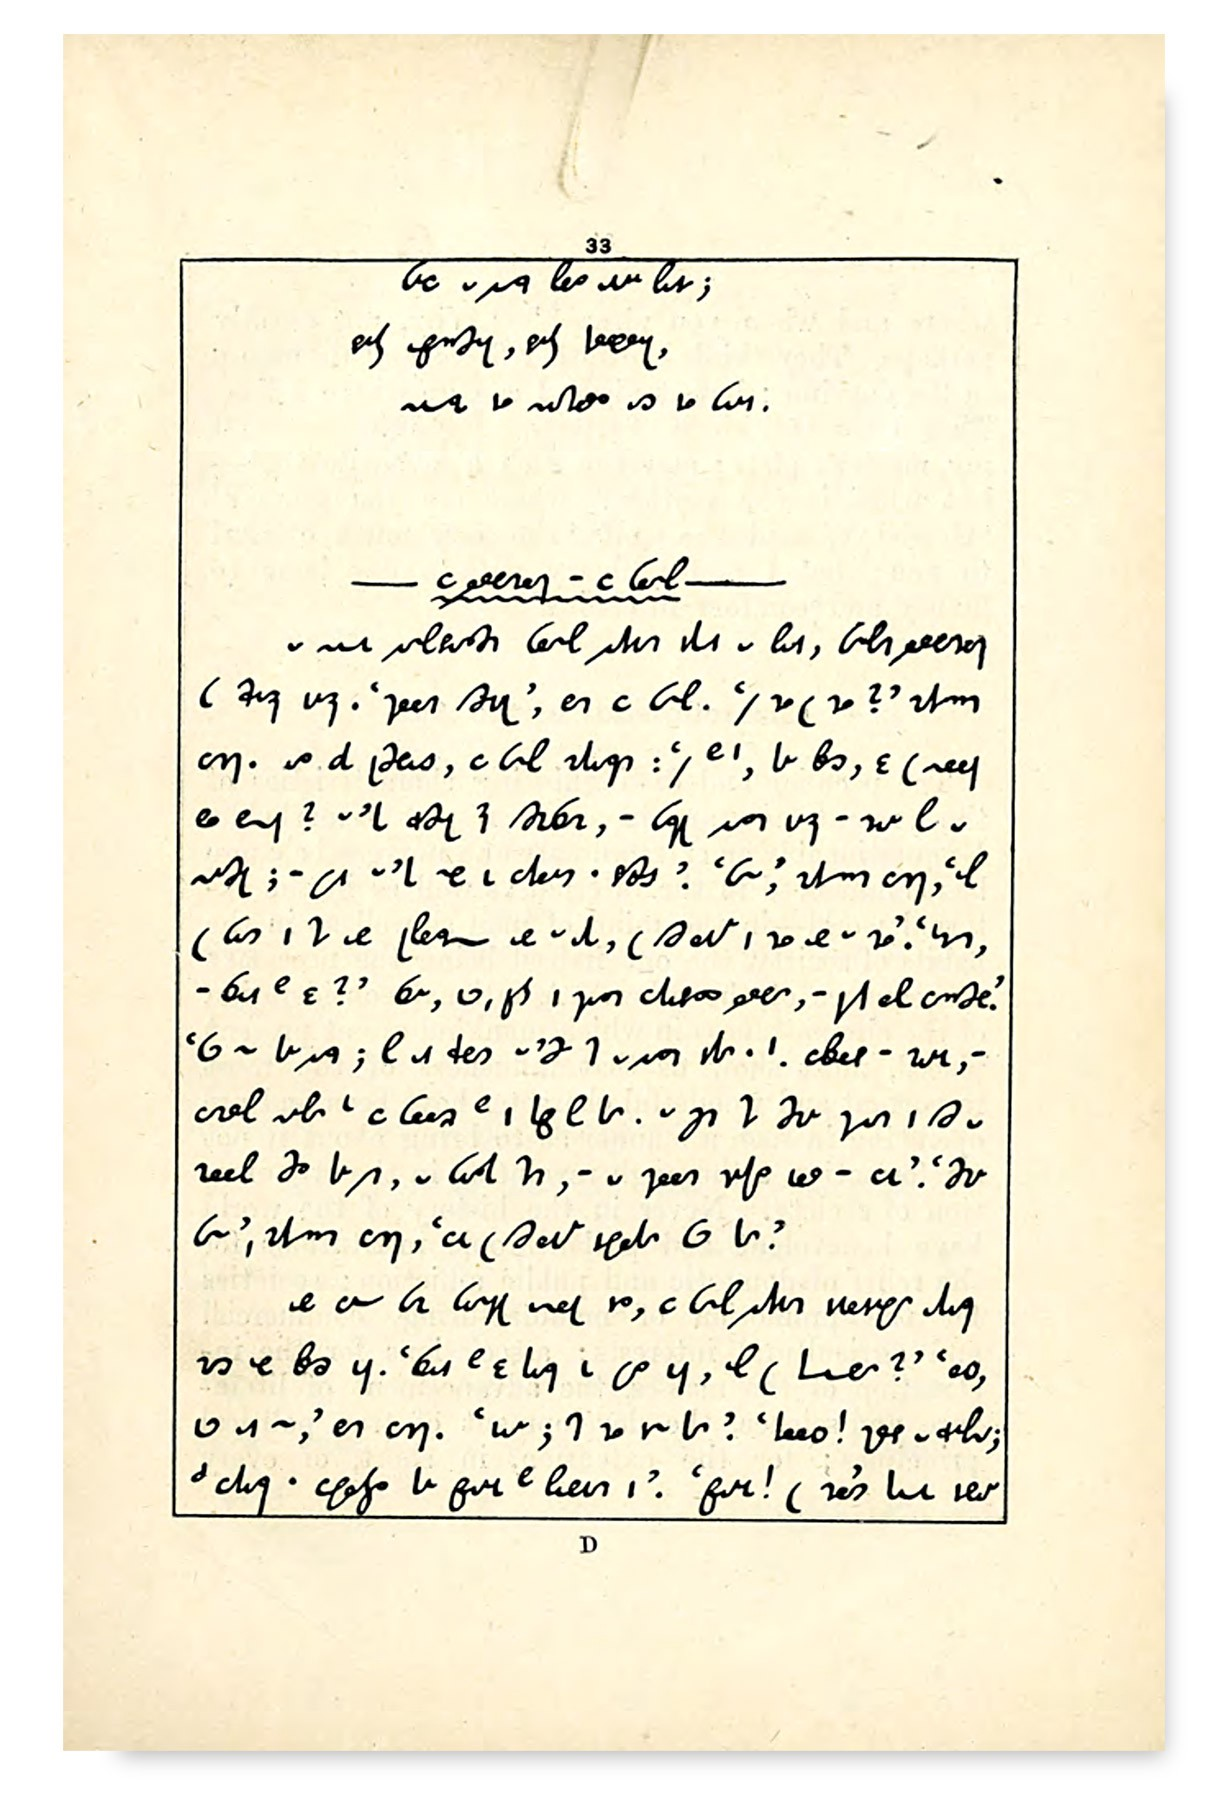 Shavian 13 origins cast shorthand showing his orthographic shorthand in action the top three lines read with heart for any fate still achieving still pursuing learn fandeluxe Gallery